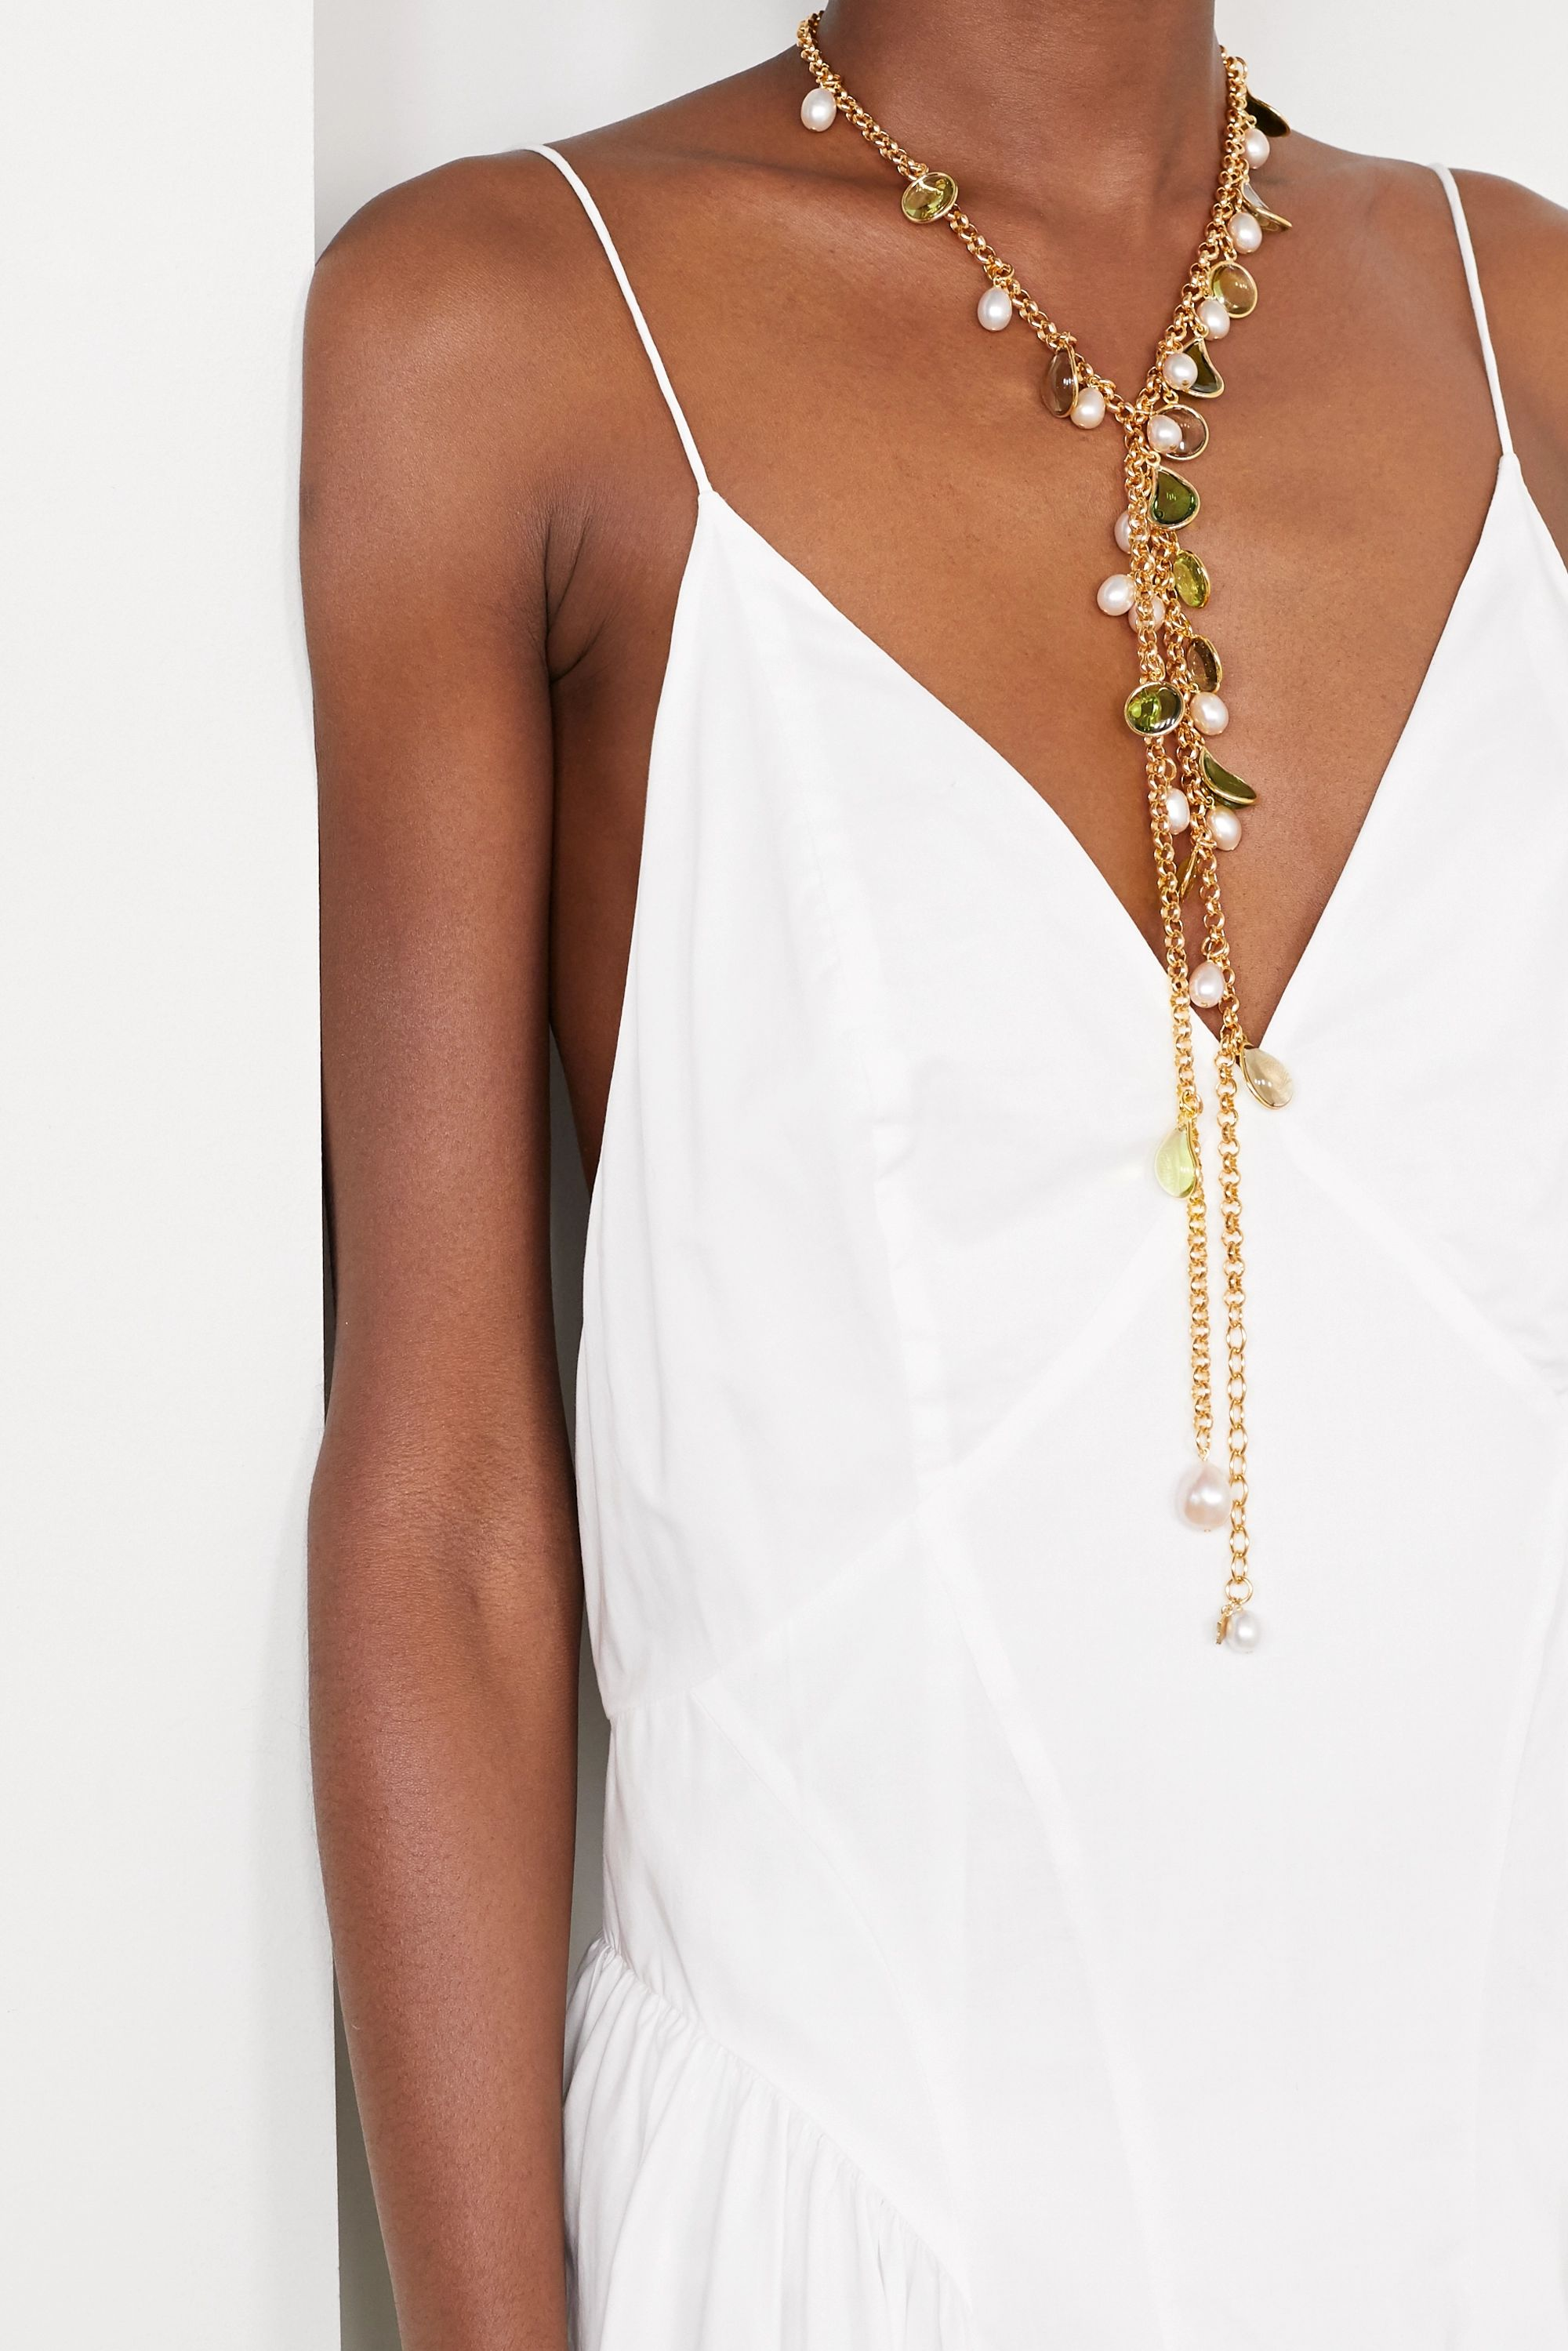 Gold Gold-plated, Glass And Pearl Necklace | Loulou De La Falaise